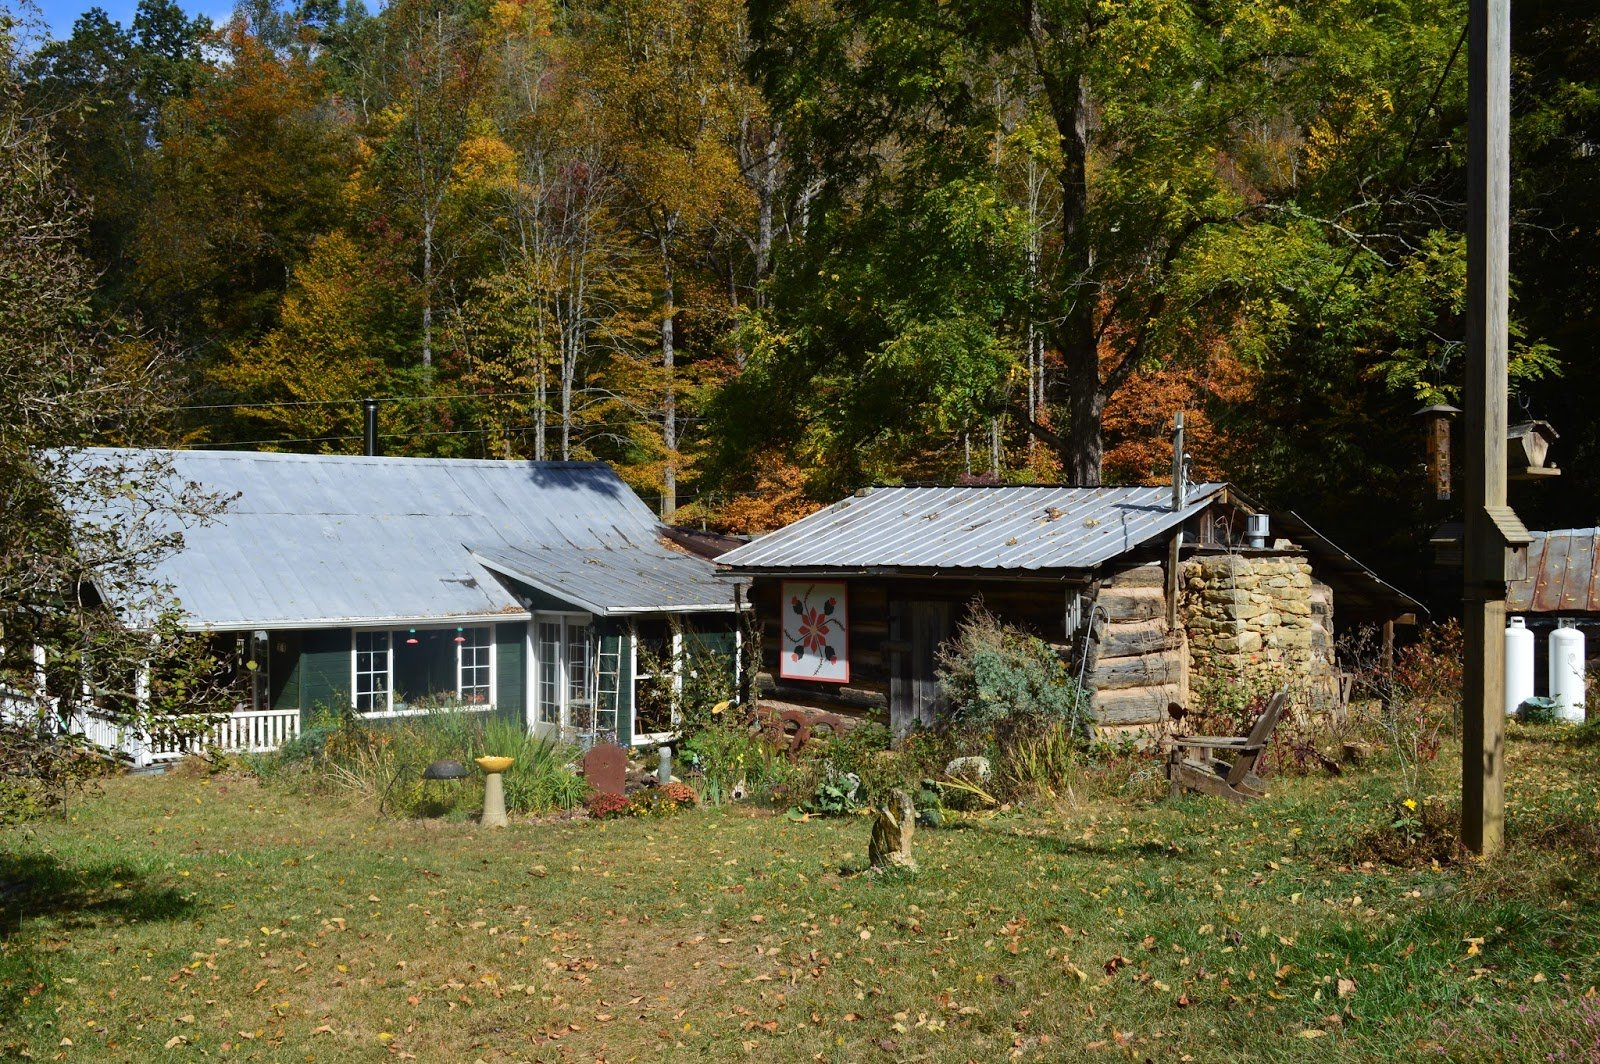 North Carolina Mountain Oasis Including Original 1840 39 S